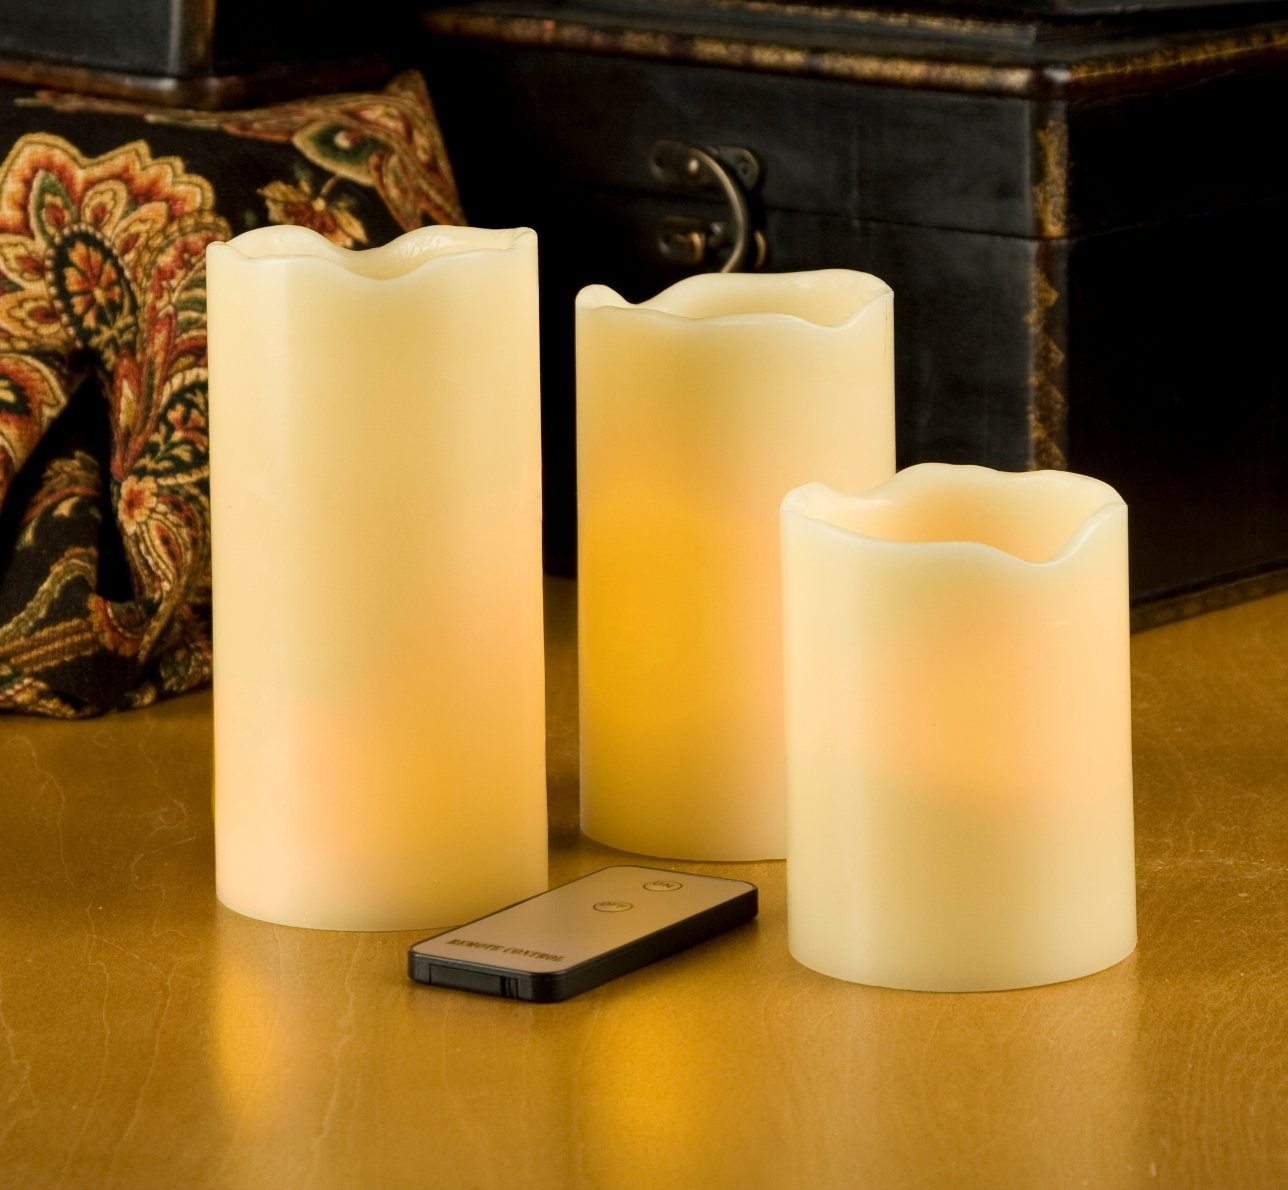 Everlasting Glow LED Ivory Pillar Candles with Remote Control - Set of 3 by The Gerson Company